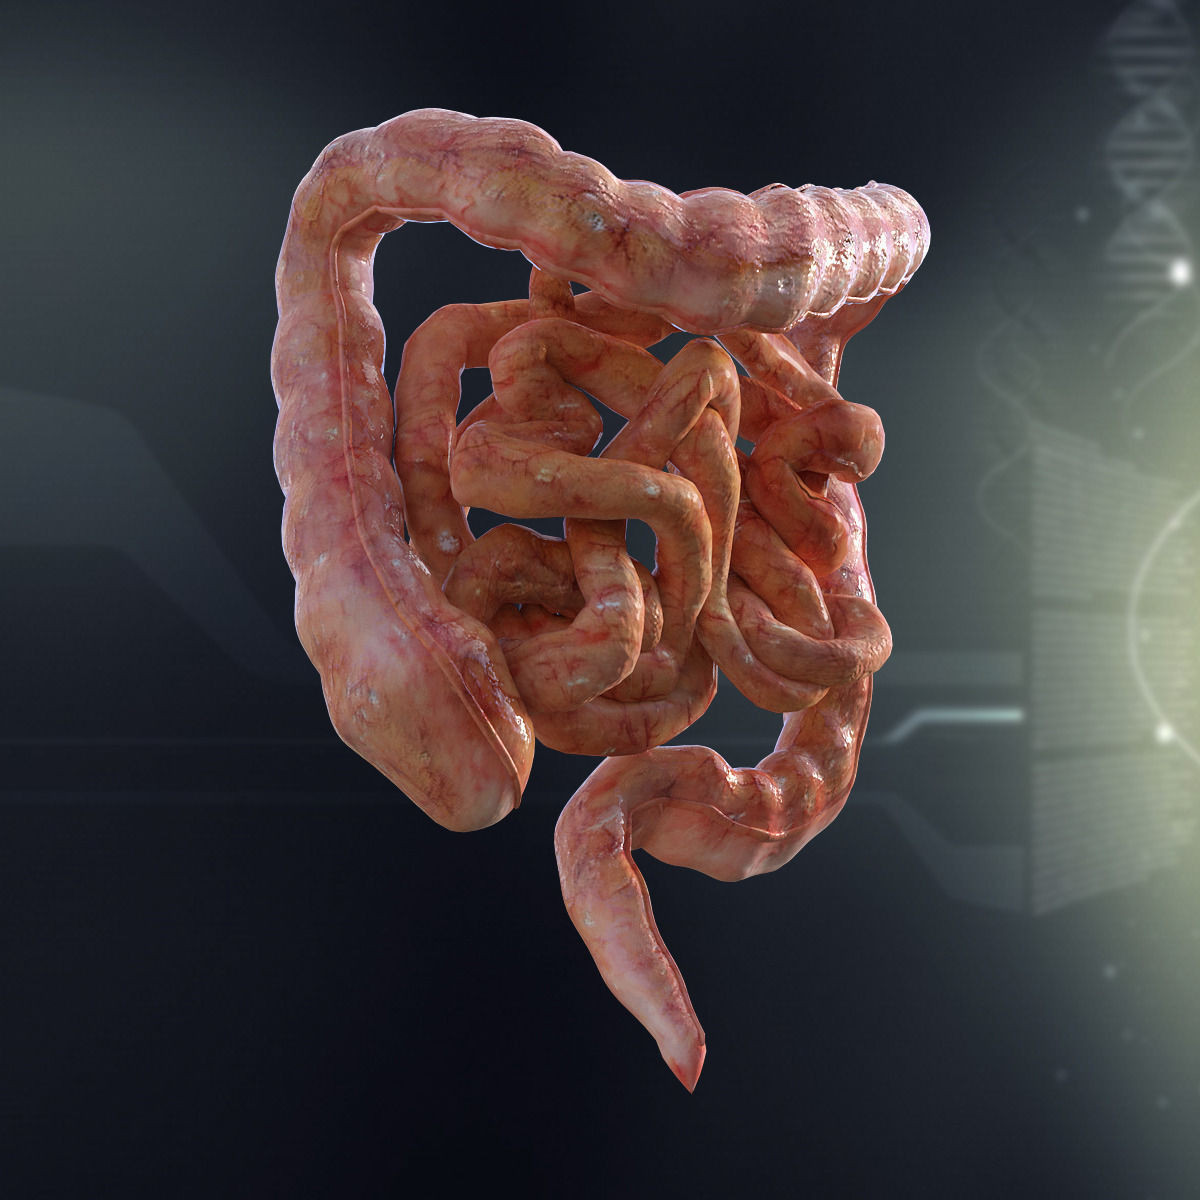 3D Human Small and Large Intestines Anatomy | CGTrader